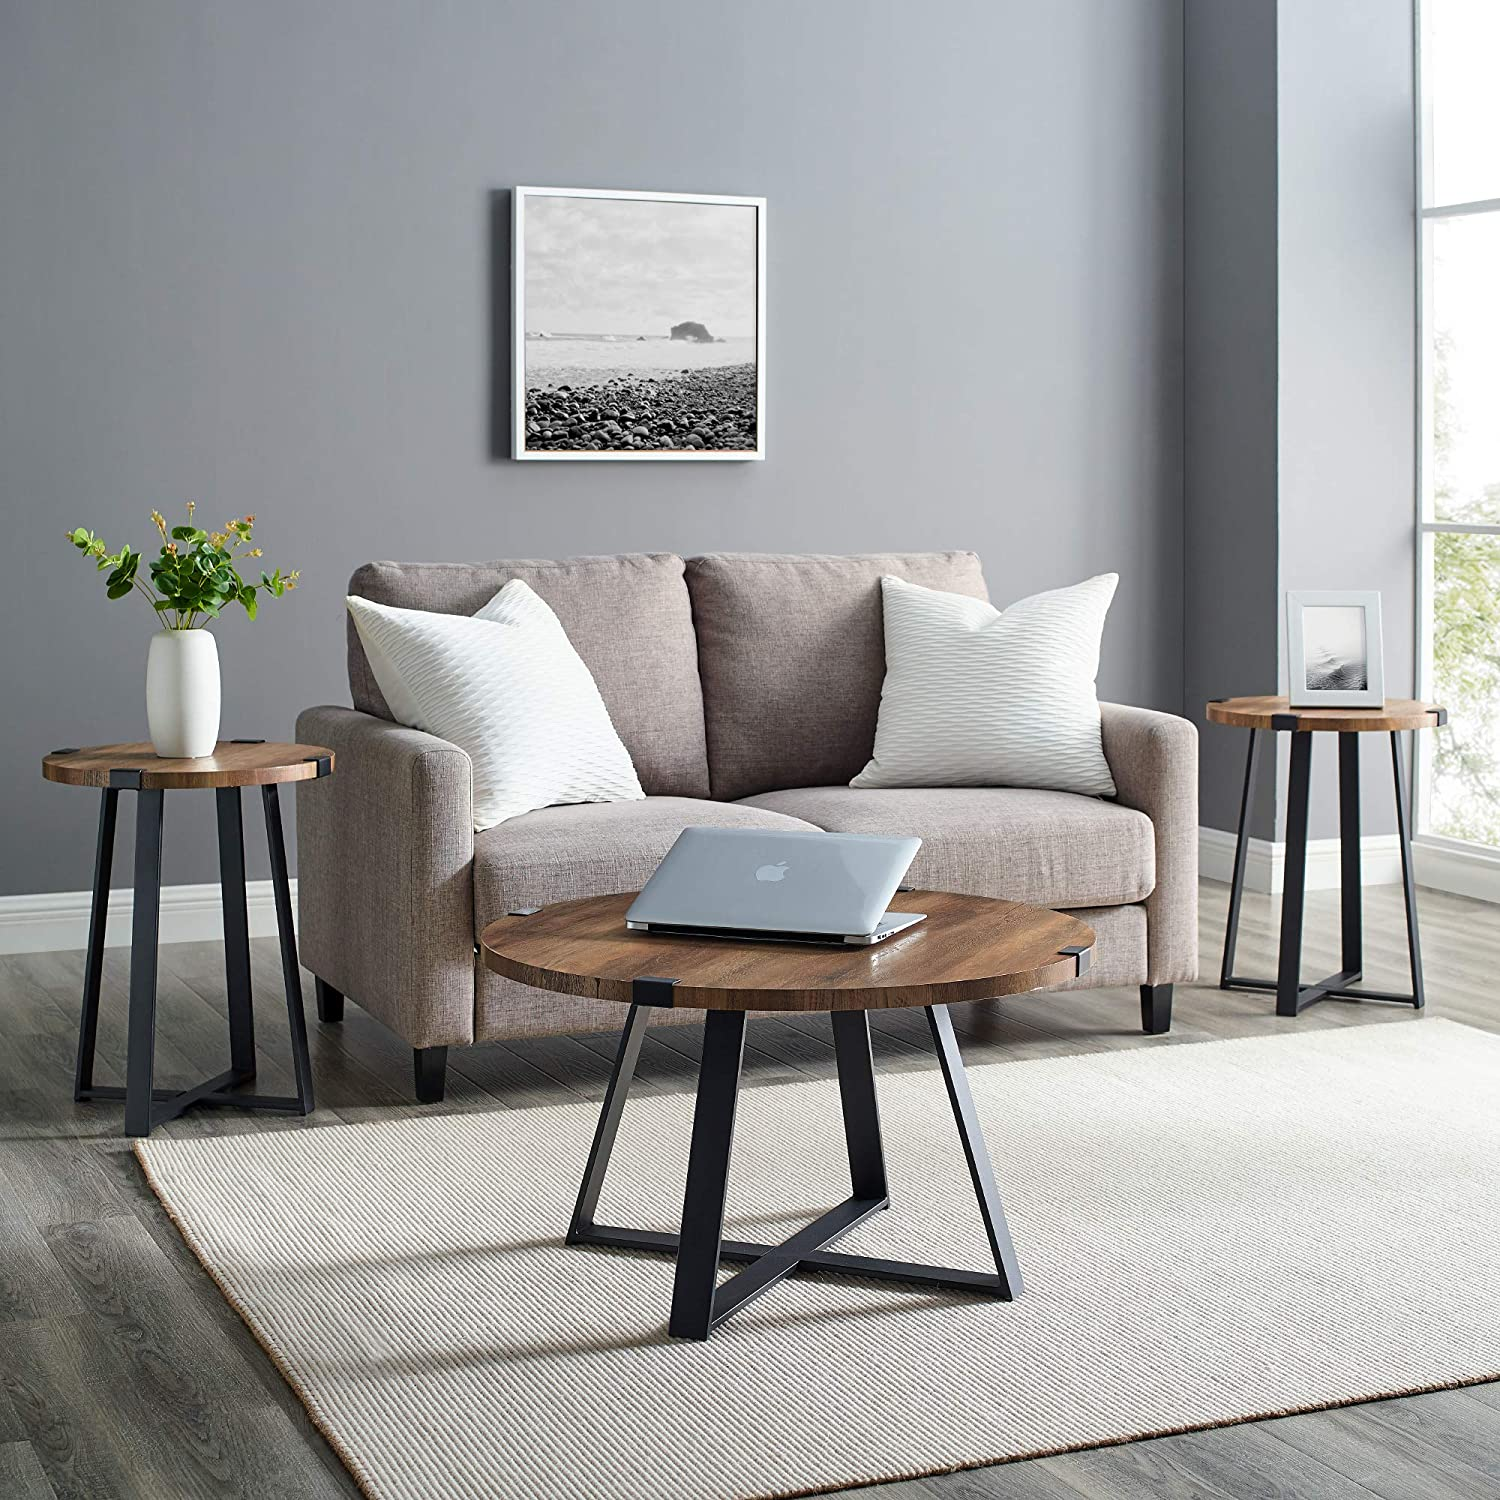 Walker Edison Anastasia Modern 3 Piece Popular shop is Outlet sale feature the lowest price challenge X Wrap Base Coffee Metal